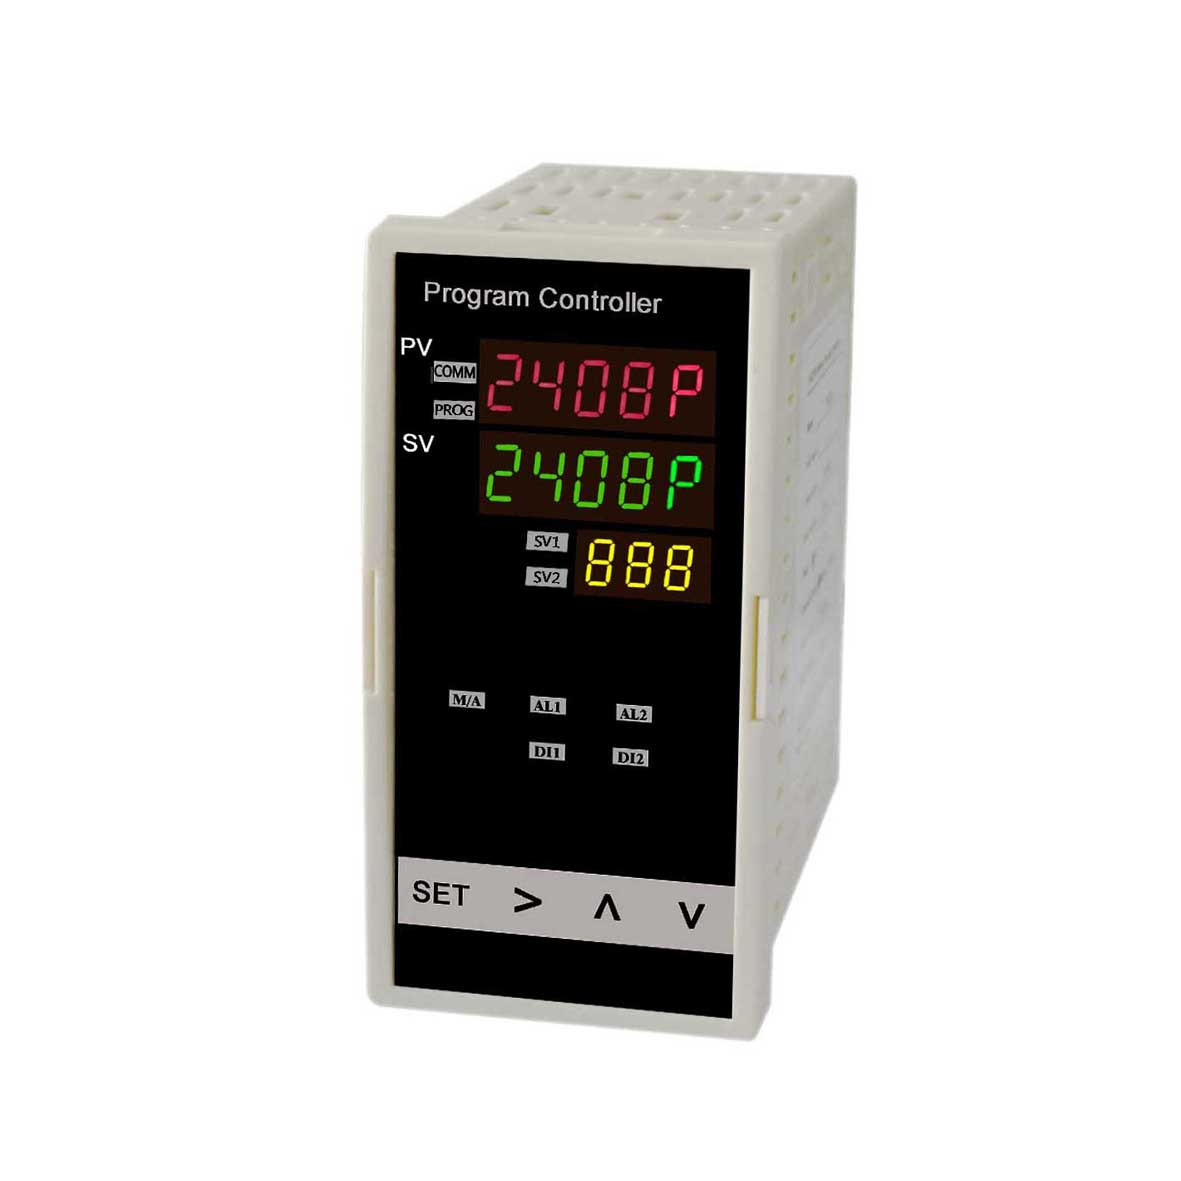 DK2408 double input switch quantity detection and remote control SV intelligent PID controller transmitter